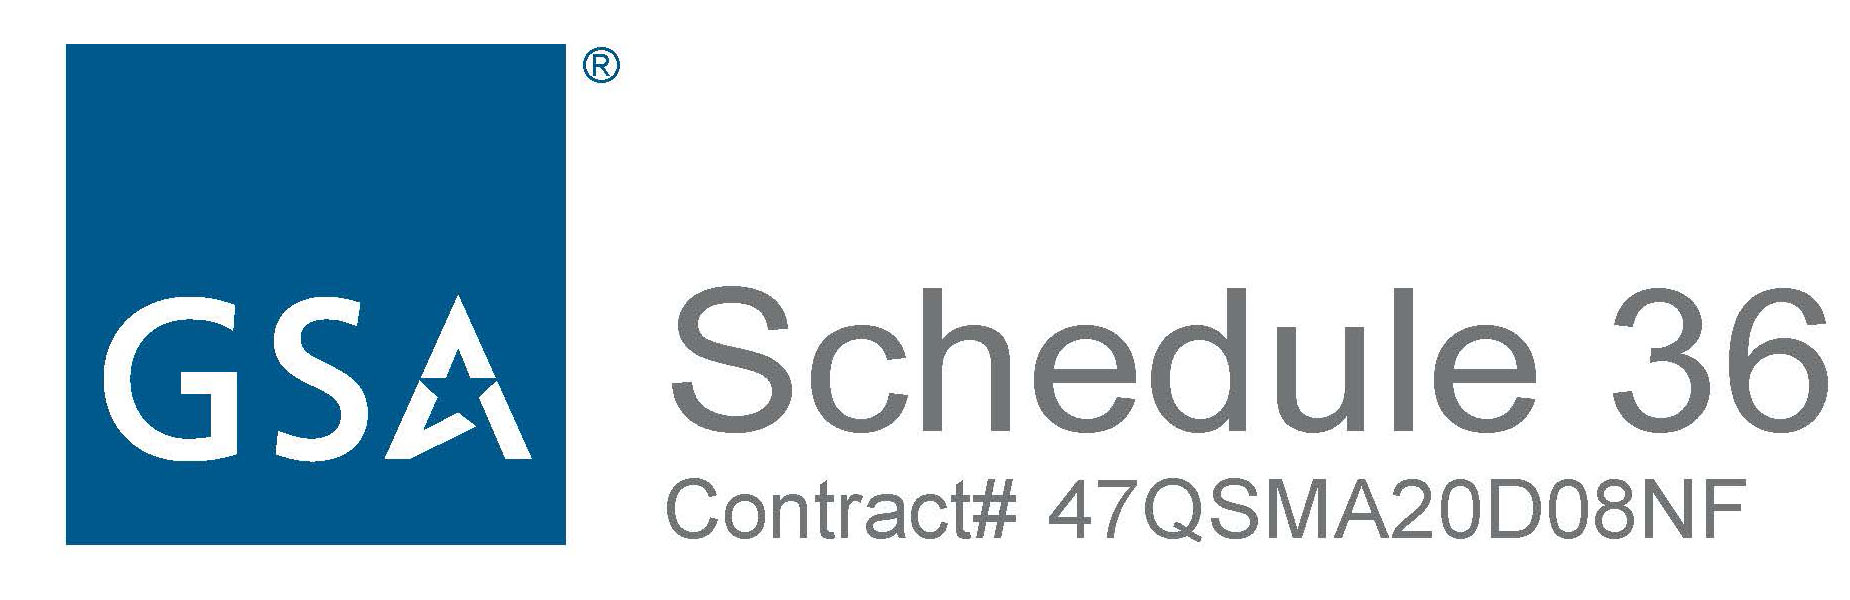 Schedule-36-StarMark_Color_w_Contract_Arial-2020